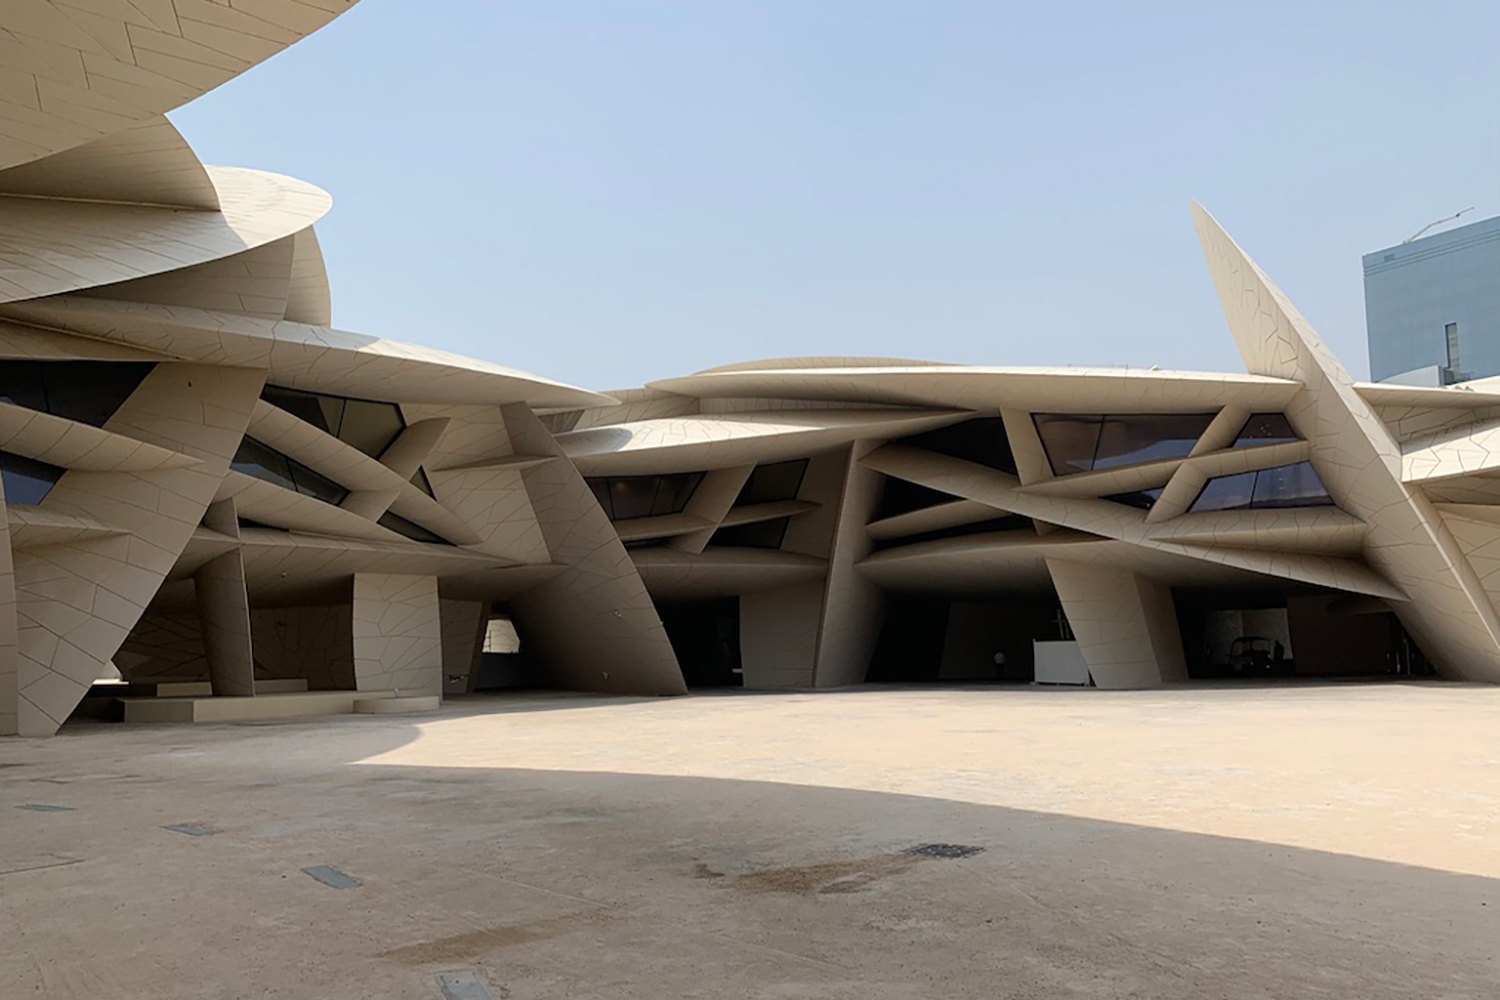 The National Museum of Qatar. WSDG was contracted to create a 3-D acoustic model of the space and make recommendations regarding appropriate speaker usage and placement. Façade.